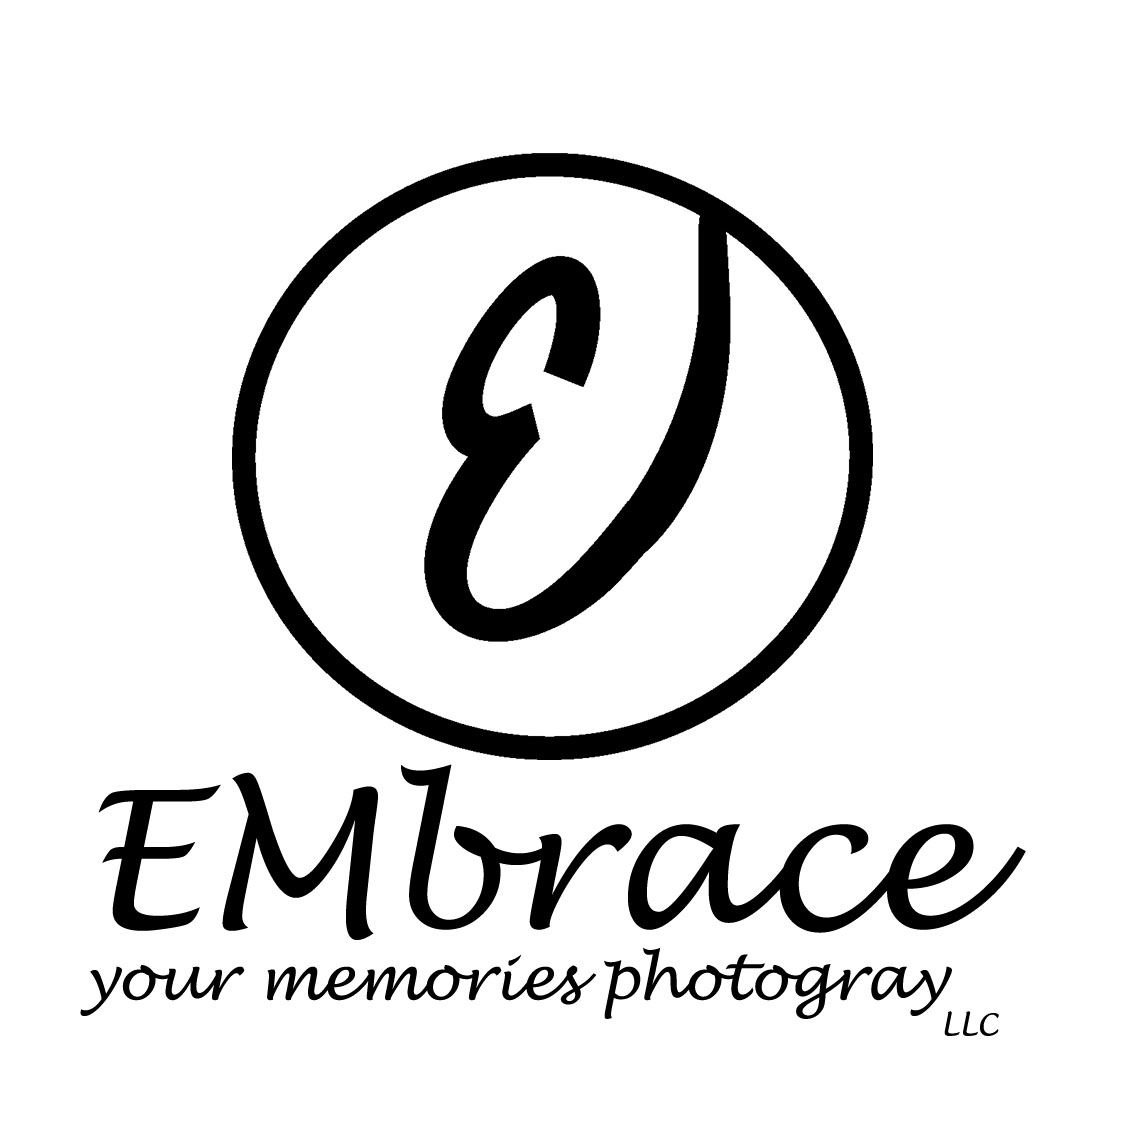 EMbrace your memories photography